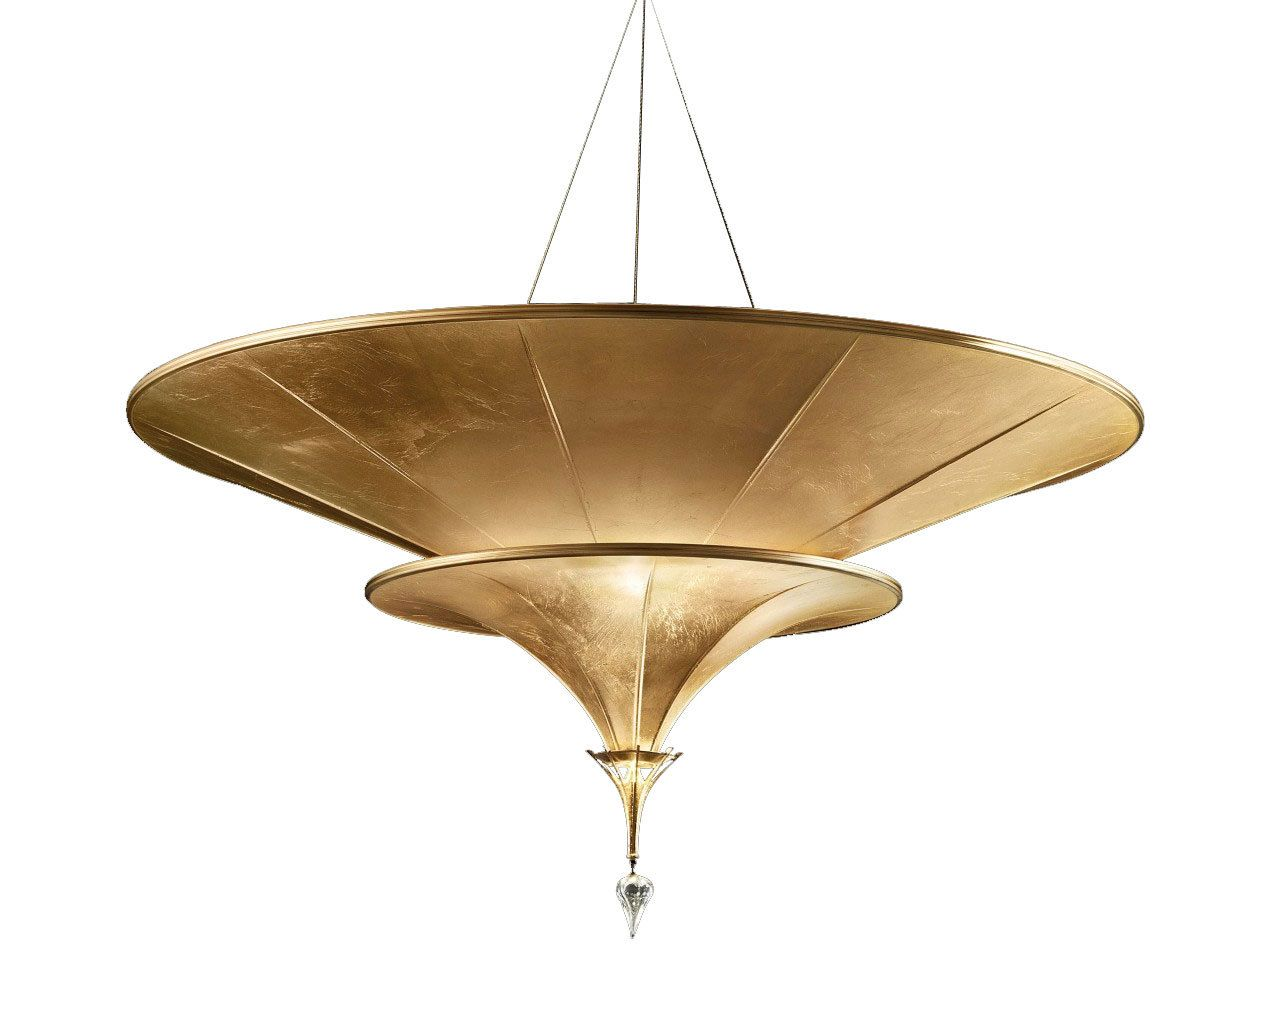 img glow or fortuny interiors chandelier pendants dining selections for entry like lighting fixtures they ambient these light alden table are in a miller over subtle an and great provide